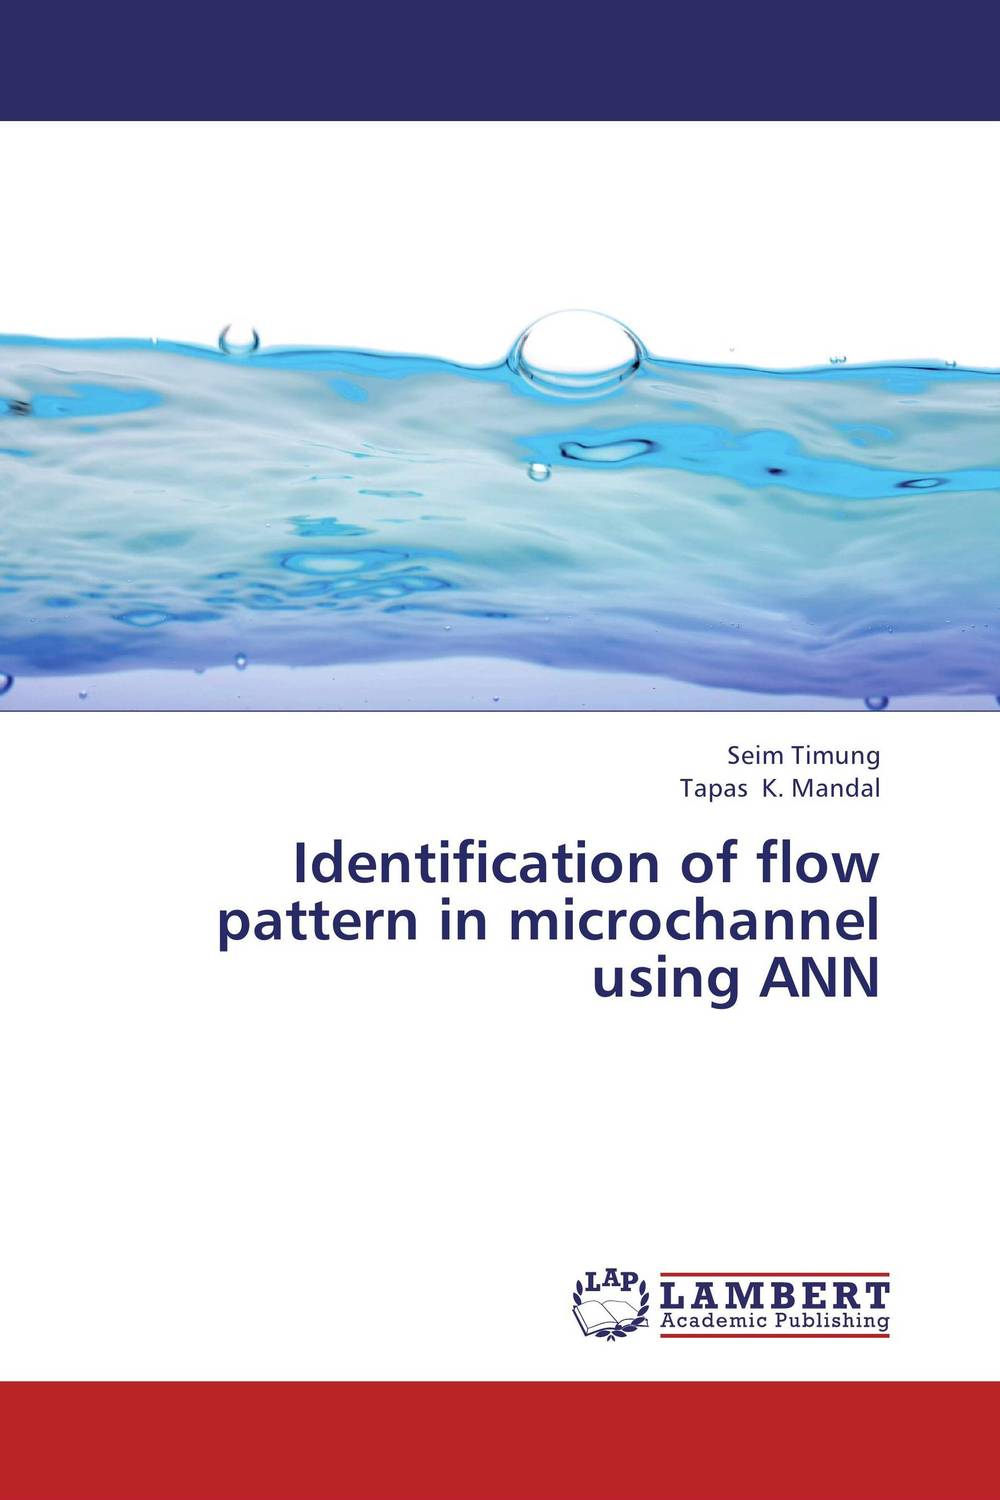 Identification of flow pattern in microchannel using ANN